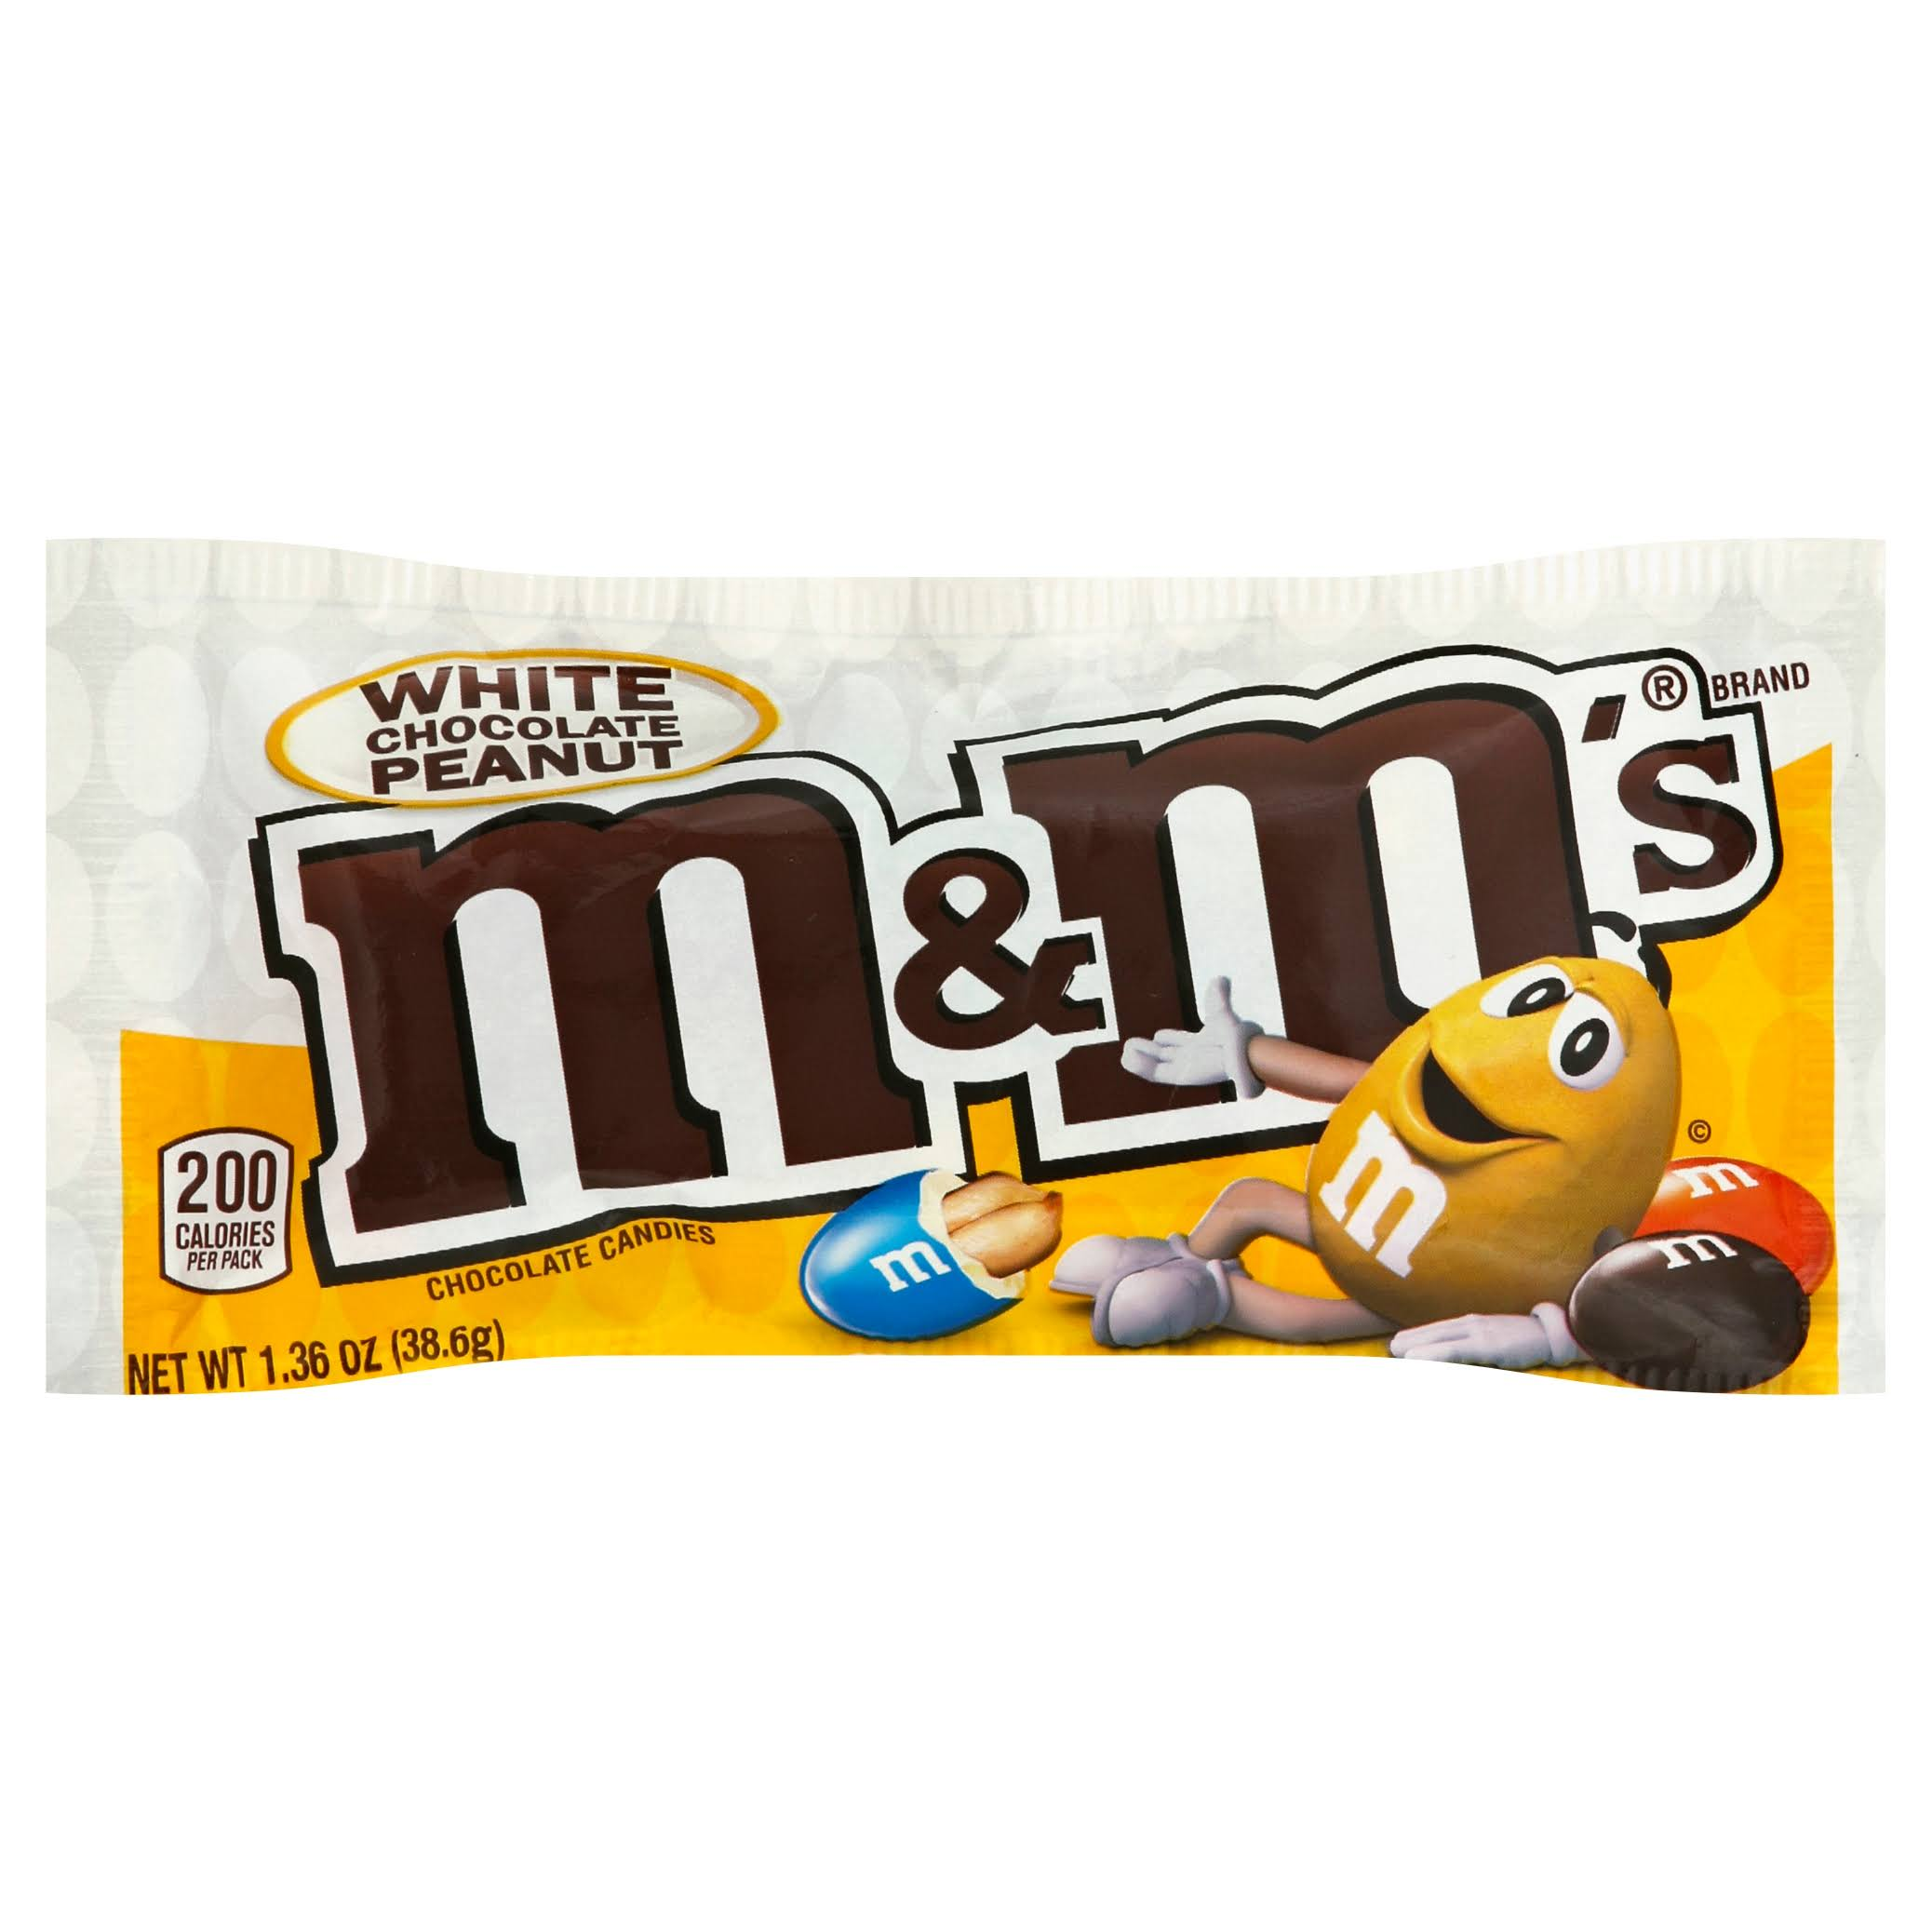 M & M Chocolate Candies, White Chocolate Peanut - 1.36 oz